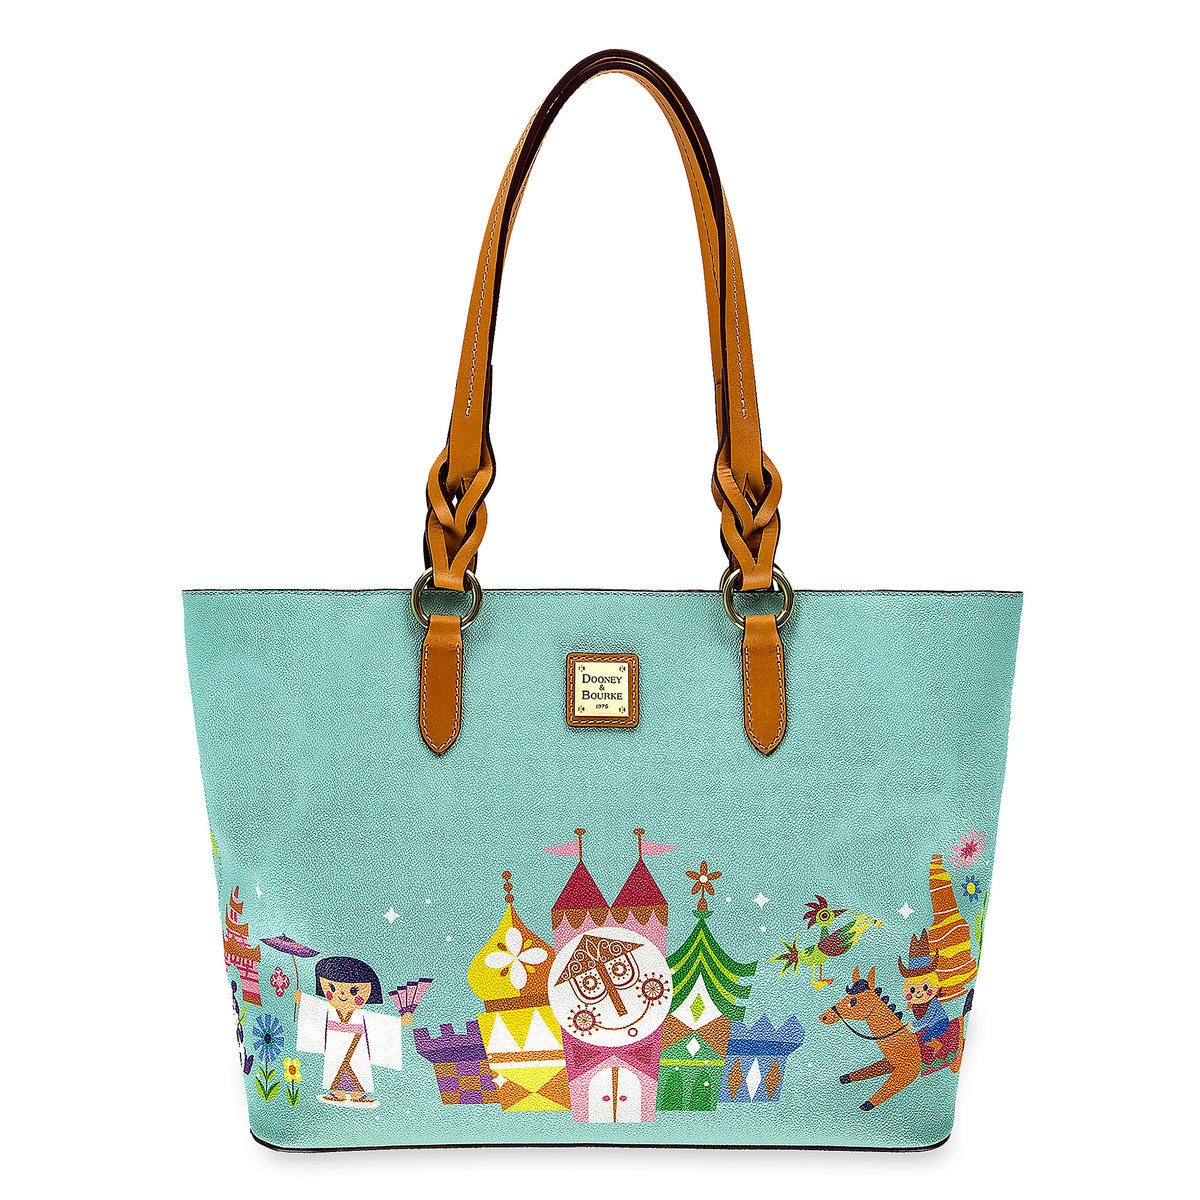 b1429c9404f003 Product Image of Disney it's a small world Tote by Dooney & Bourke # 1